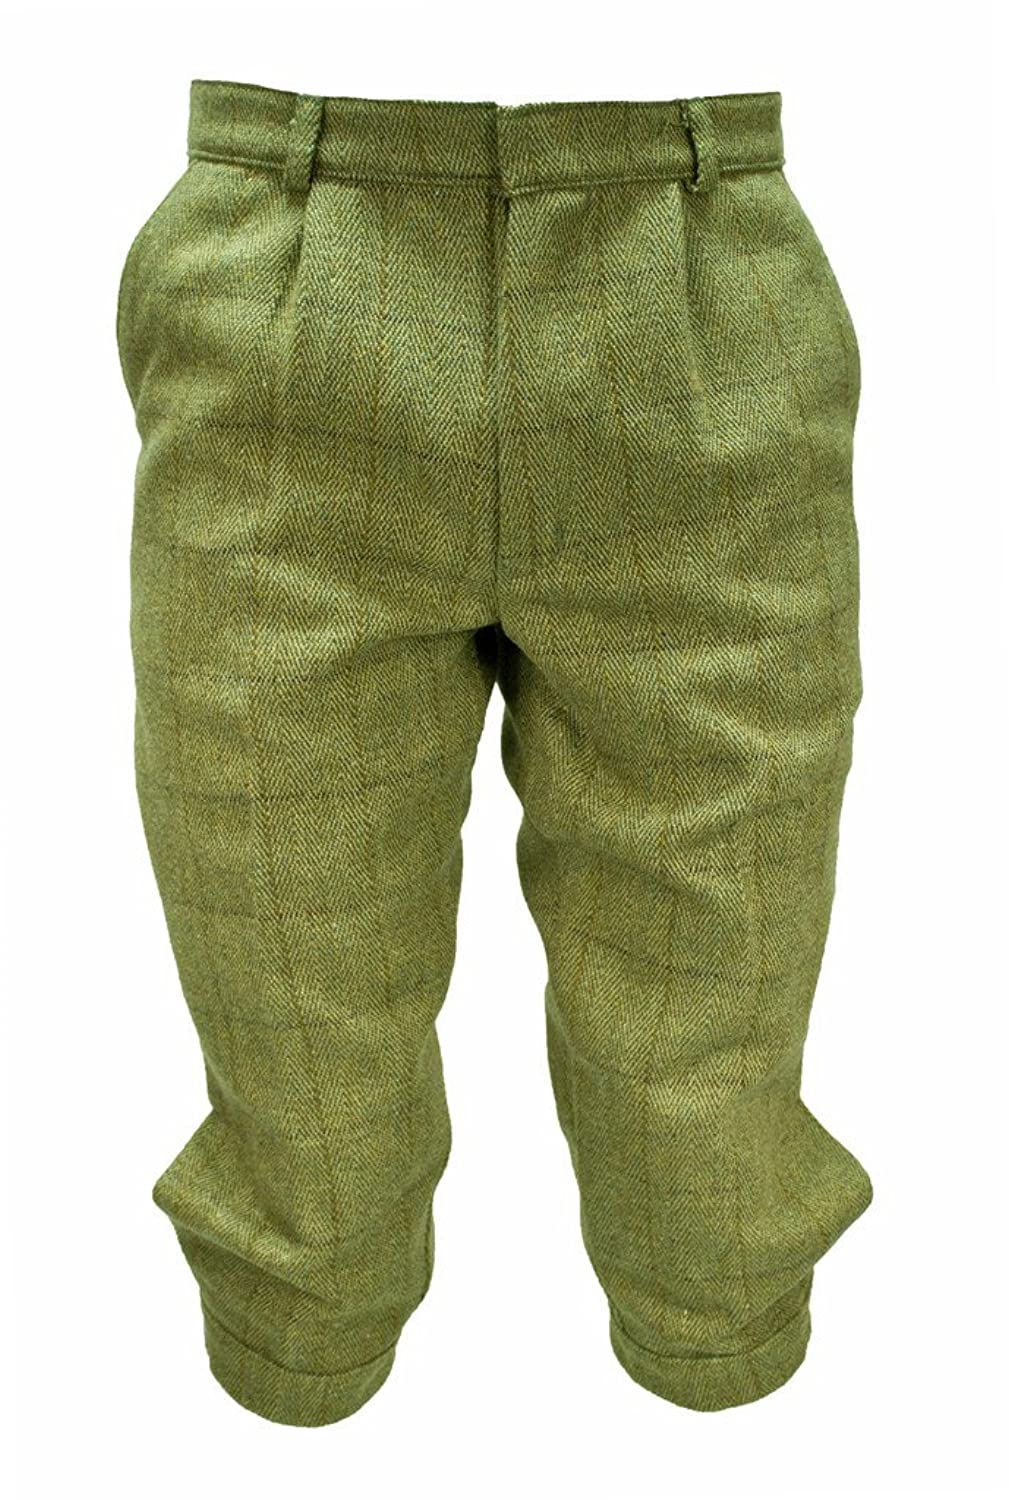 1920s Skirts, Gatsby Skirts, Vintage Pleated Skirts Tweed Breeks Trousers Pants Plus Fours by WWK / WorkWear King $54.95 AT vintagedancer.com